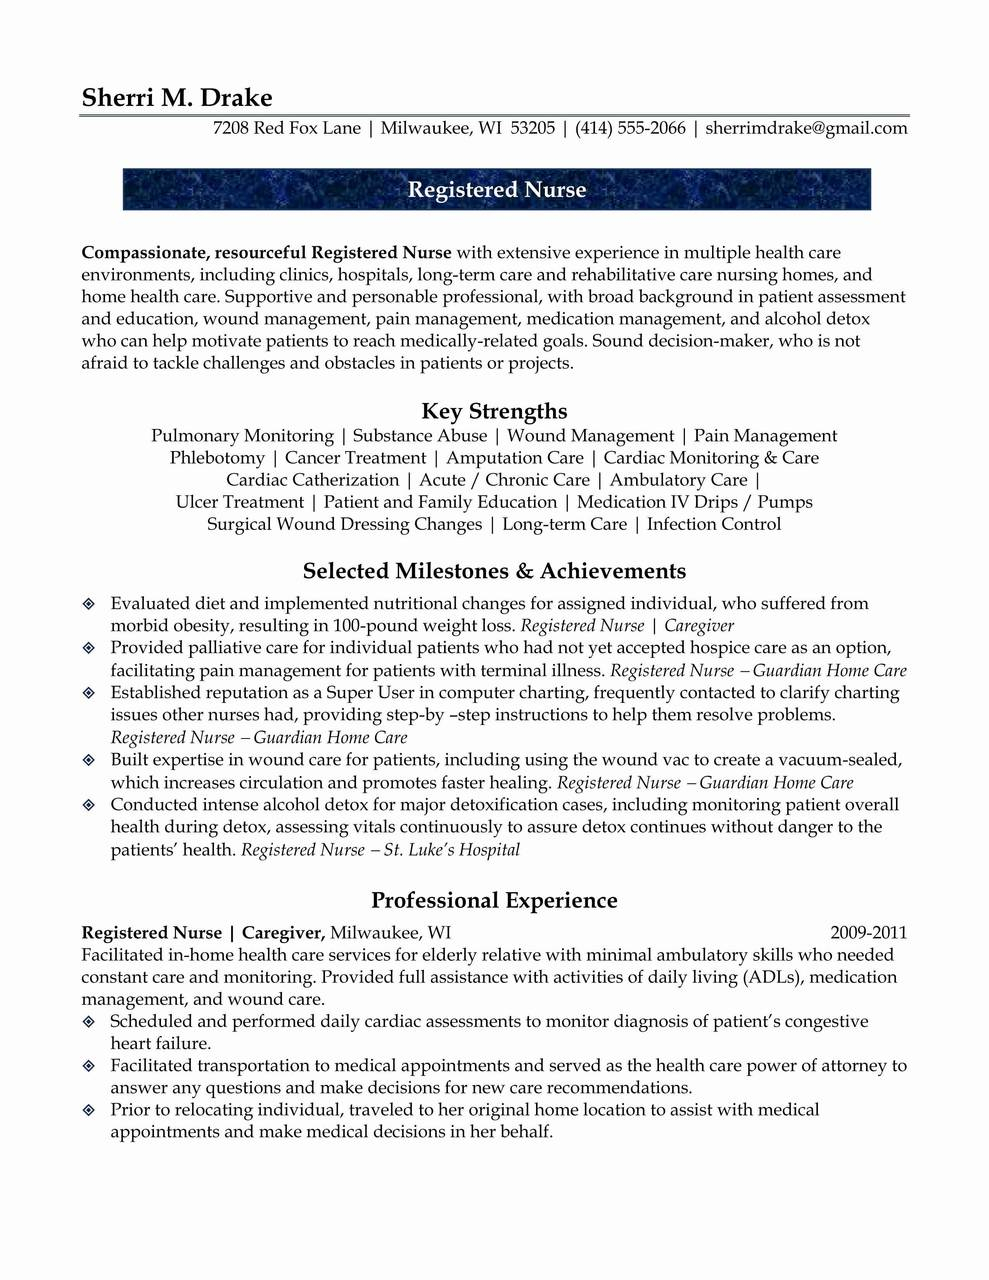 Home Care Nurse Resume - Resume for Nursing Job Literarywondrous Critical Care Nurse Resume